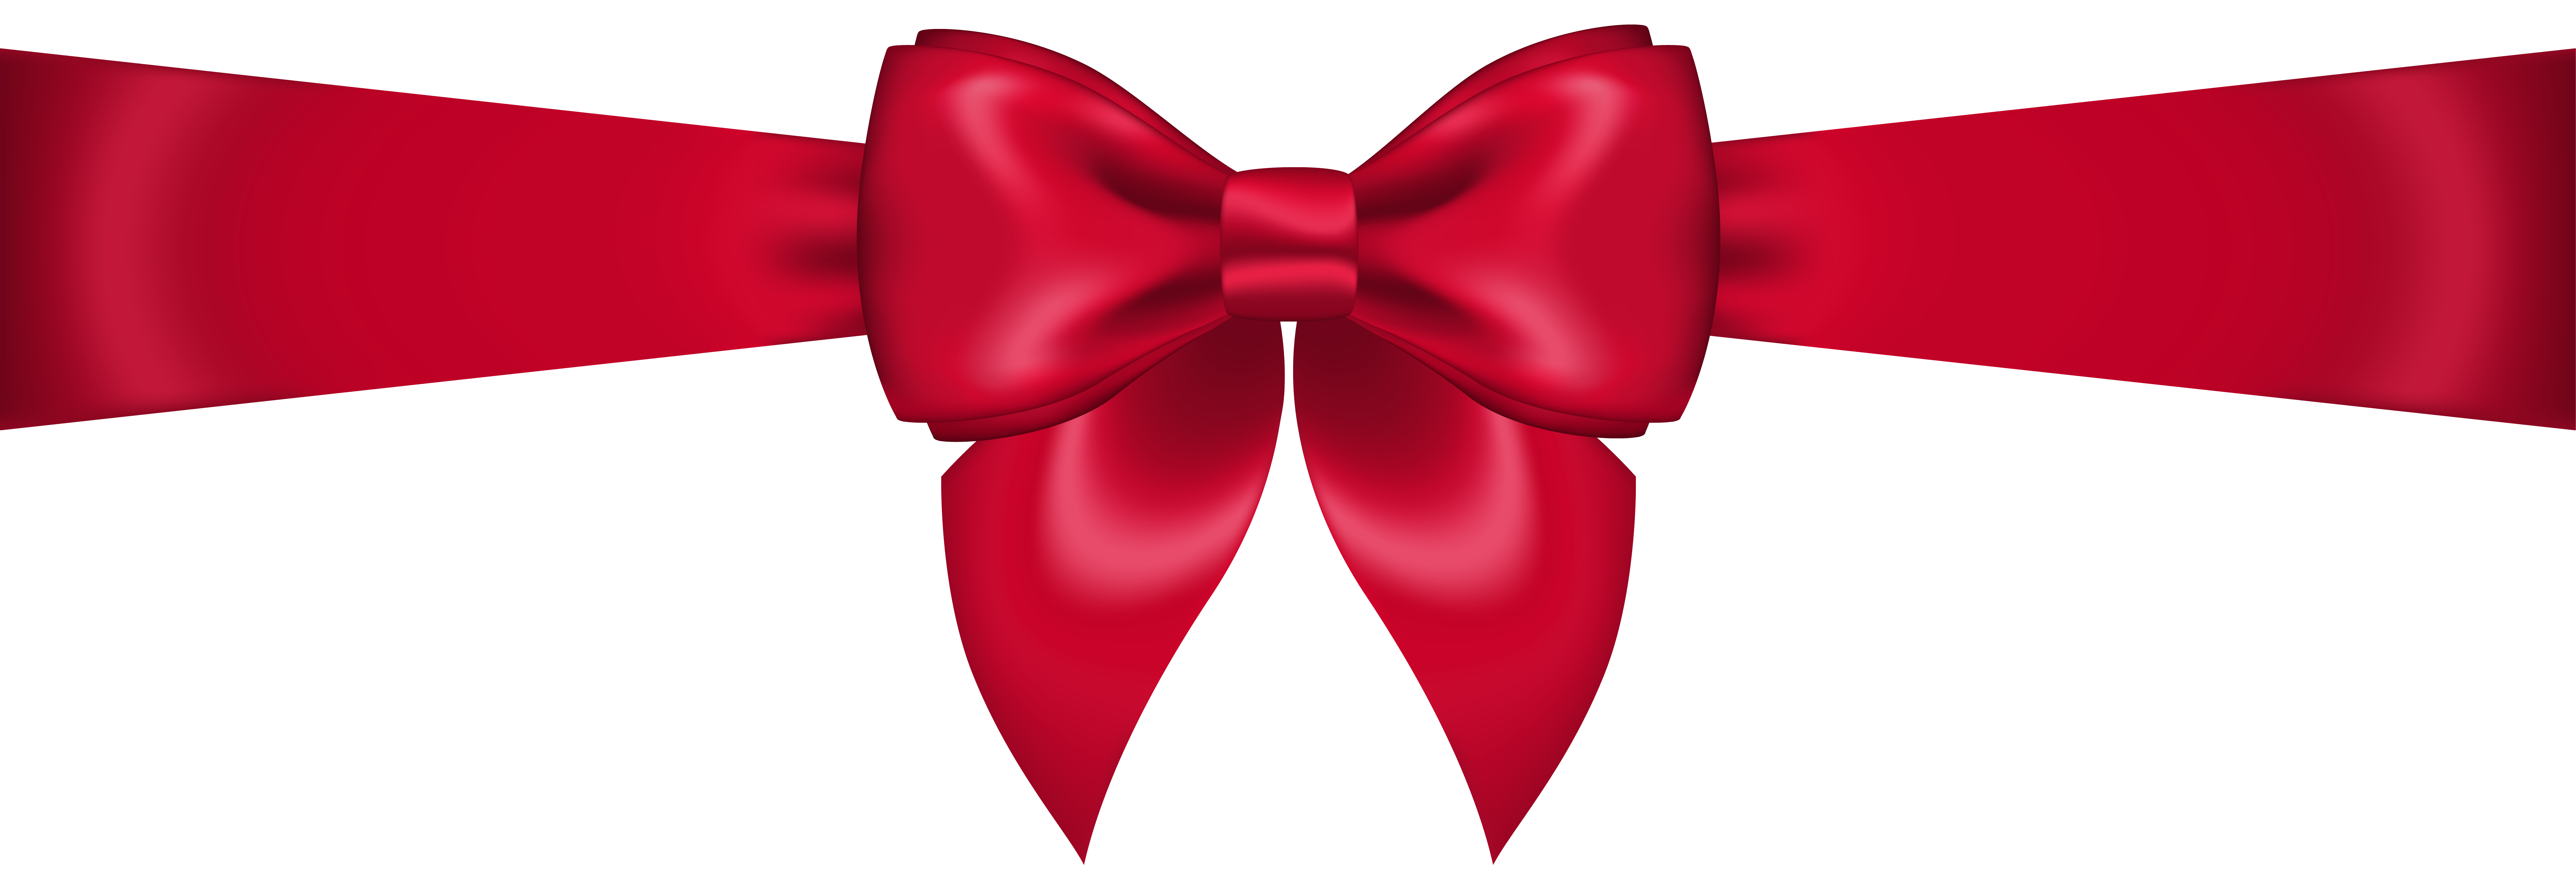 7562x2619 Red Bow Transparent Png Clip Art Imageu200b Gallery Yopriceville